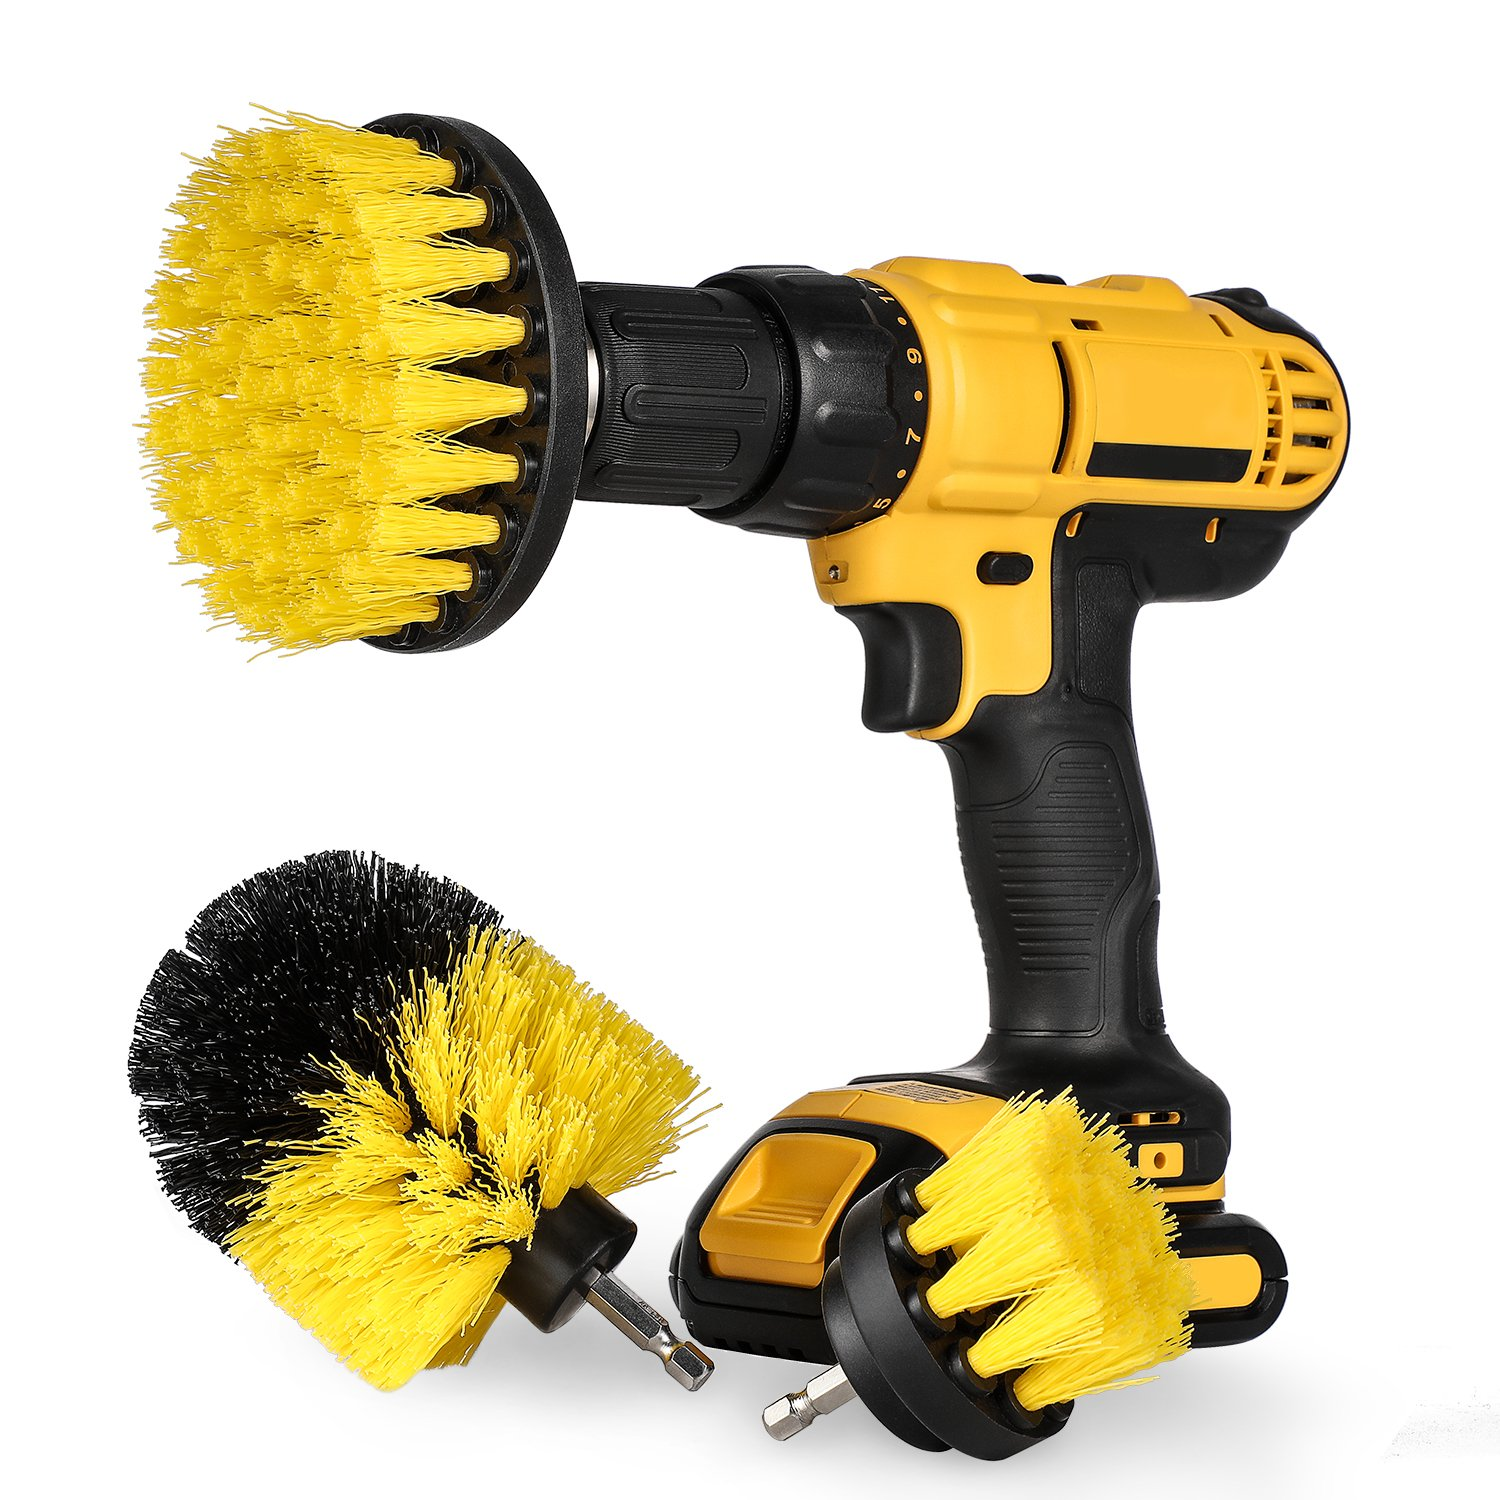 Drill Brush Attachment Set - Power Scrubber Brush Cleaning Kit - All Purpose Drill Brush for Bathroom Surfaces, Grout, Floor, Tub, Shower, Tile, Corners and Kitchen - Medium, Yellow Hiware